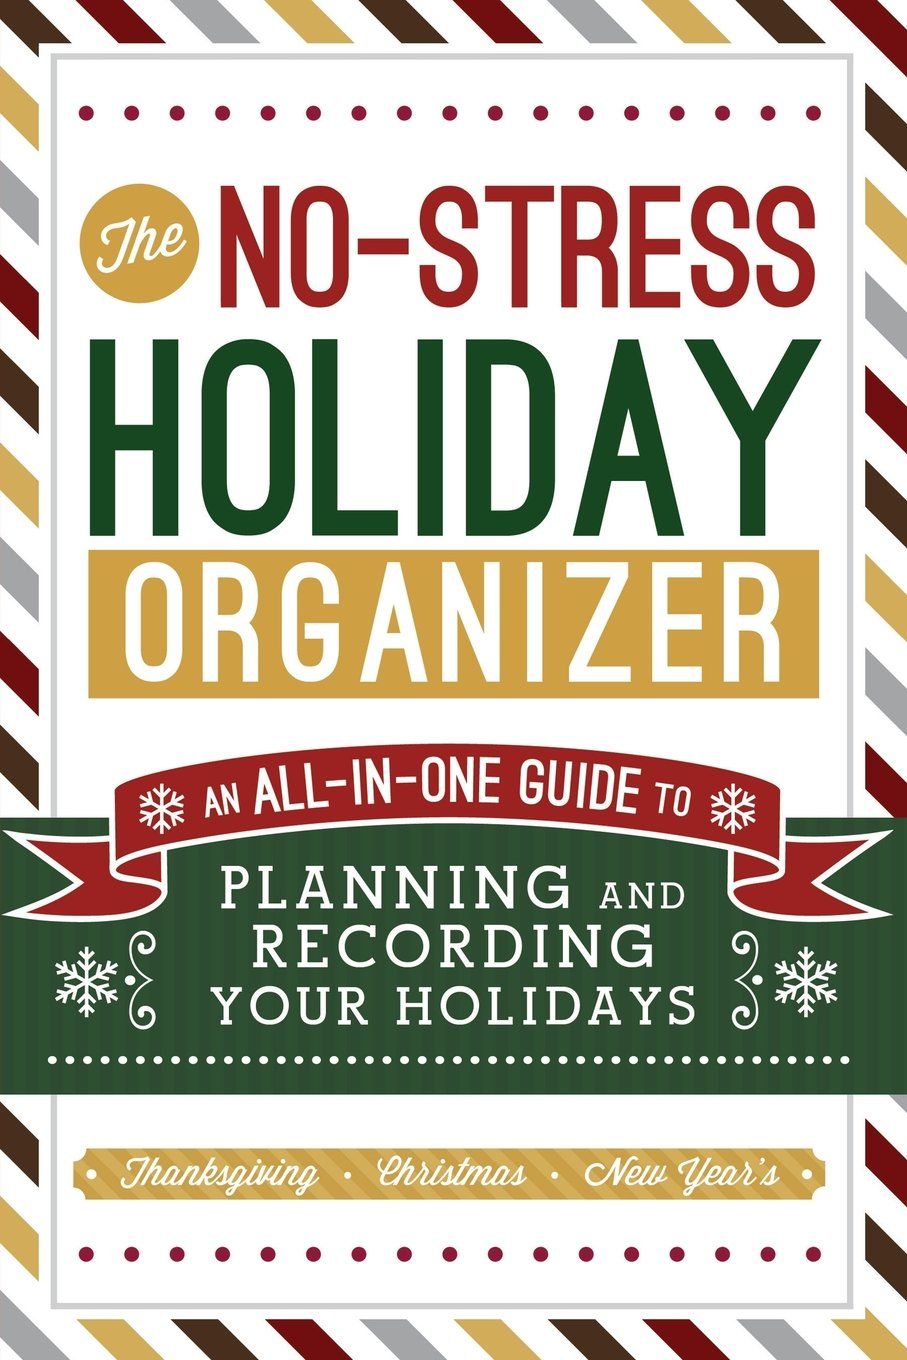 The No-Stress Holiday Organizer: An All-in-One Guide to Planning and ...